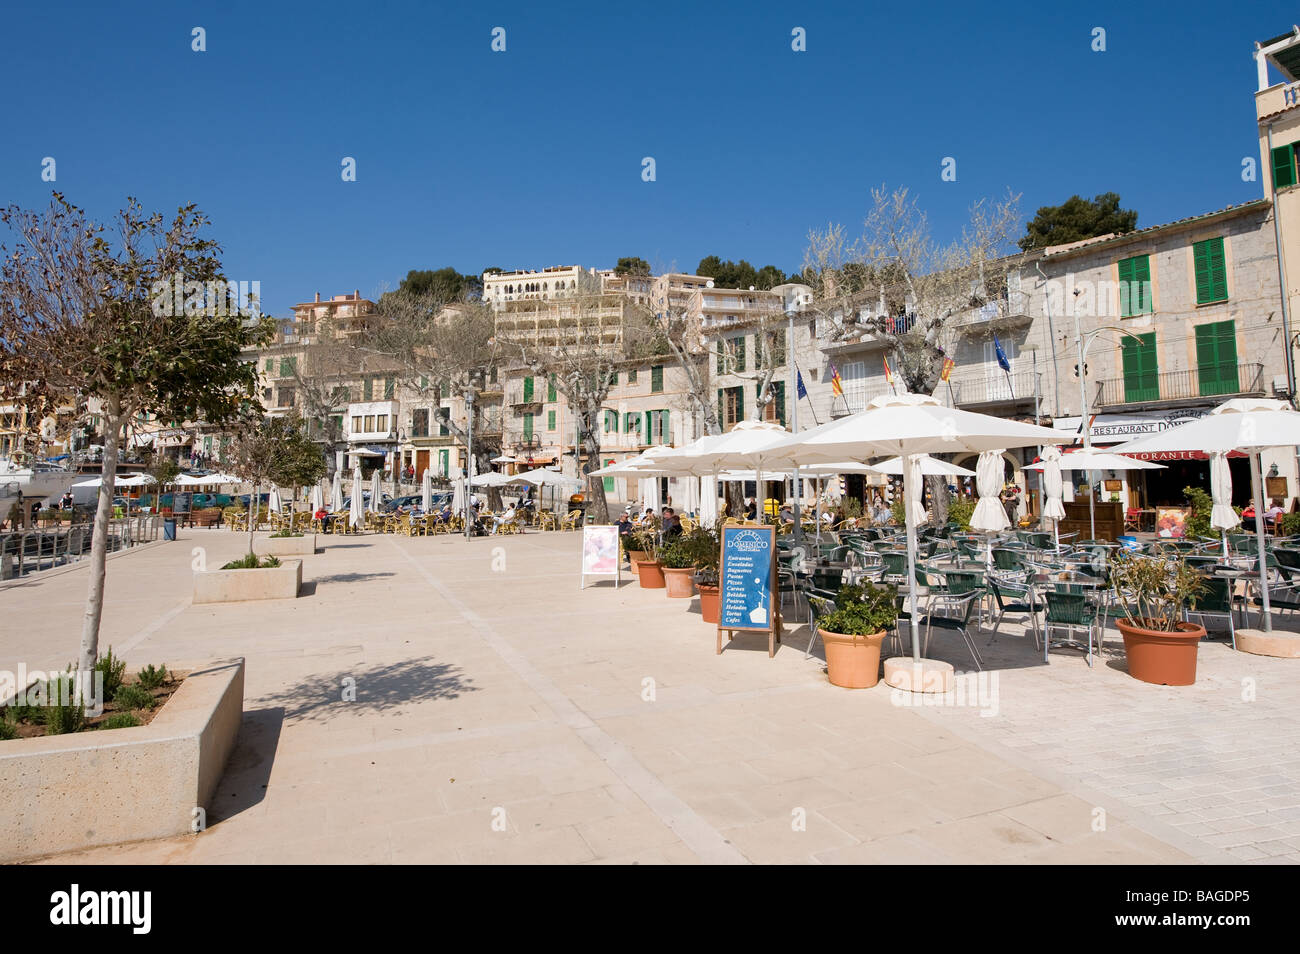 Tables and chairs outside bars cafes and restaurants in the spanish resort of Stoller Mallorca Spain - Stock Image